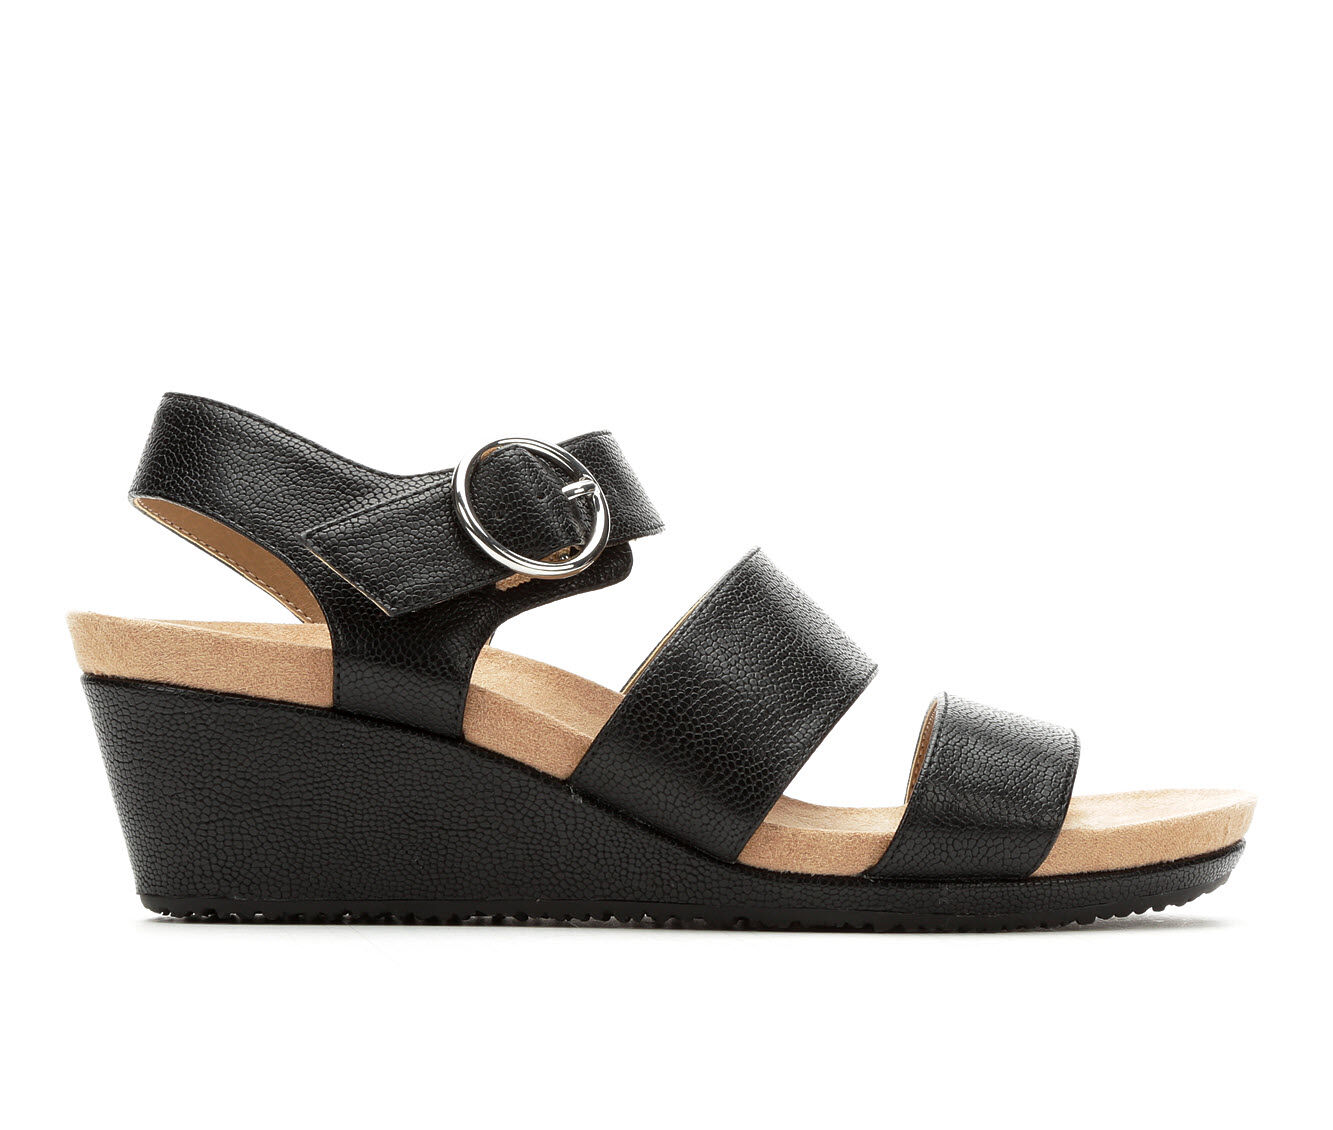 Women's LifeStride Muse Wedges Black